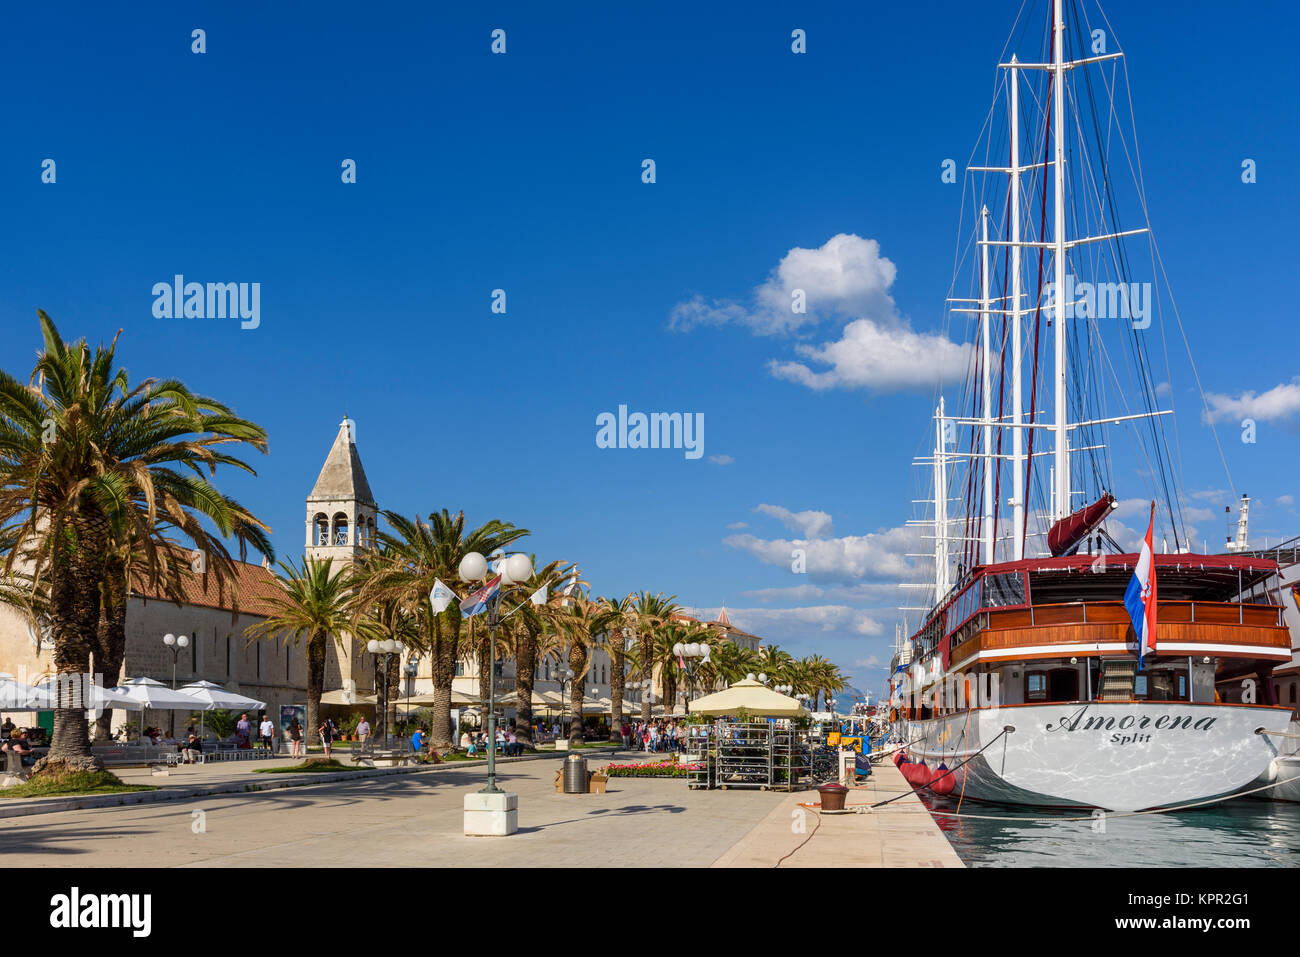 Cruise ships along the seafront promenade, Trogir Old Town, Croatia - Stock Image